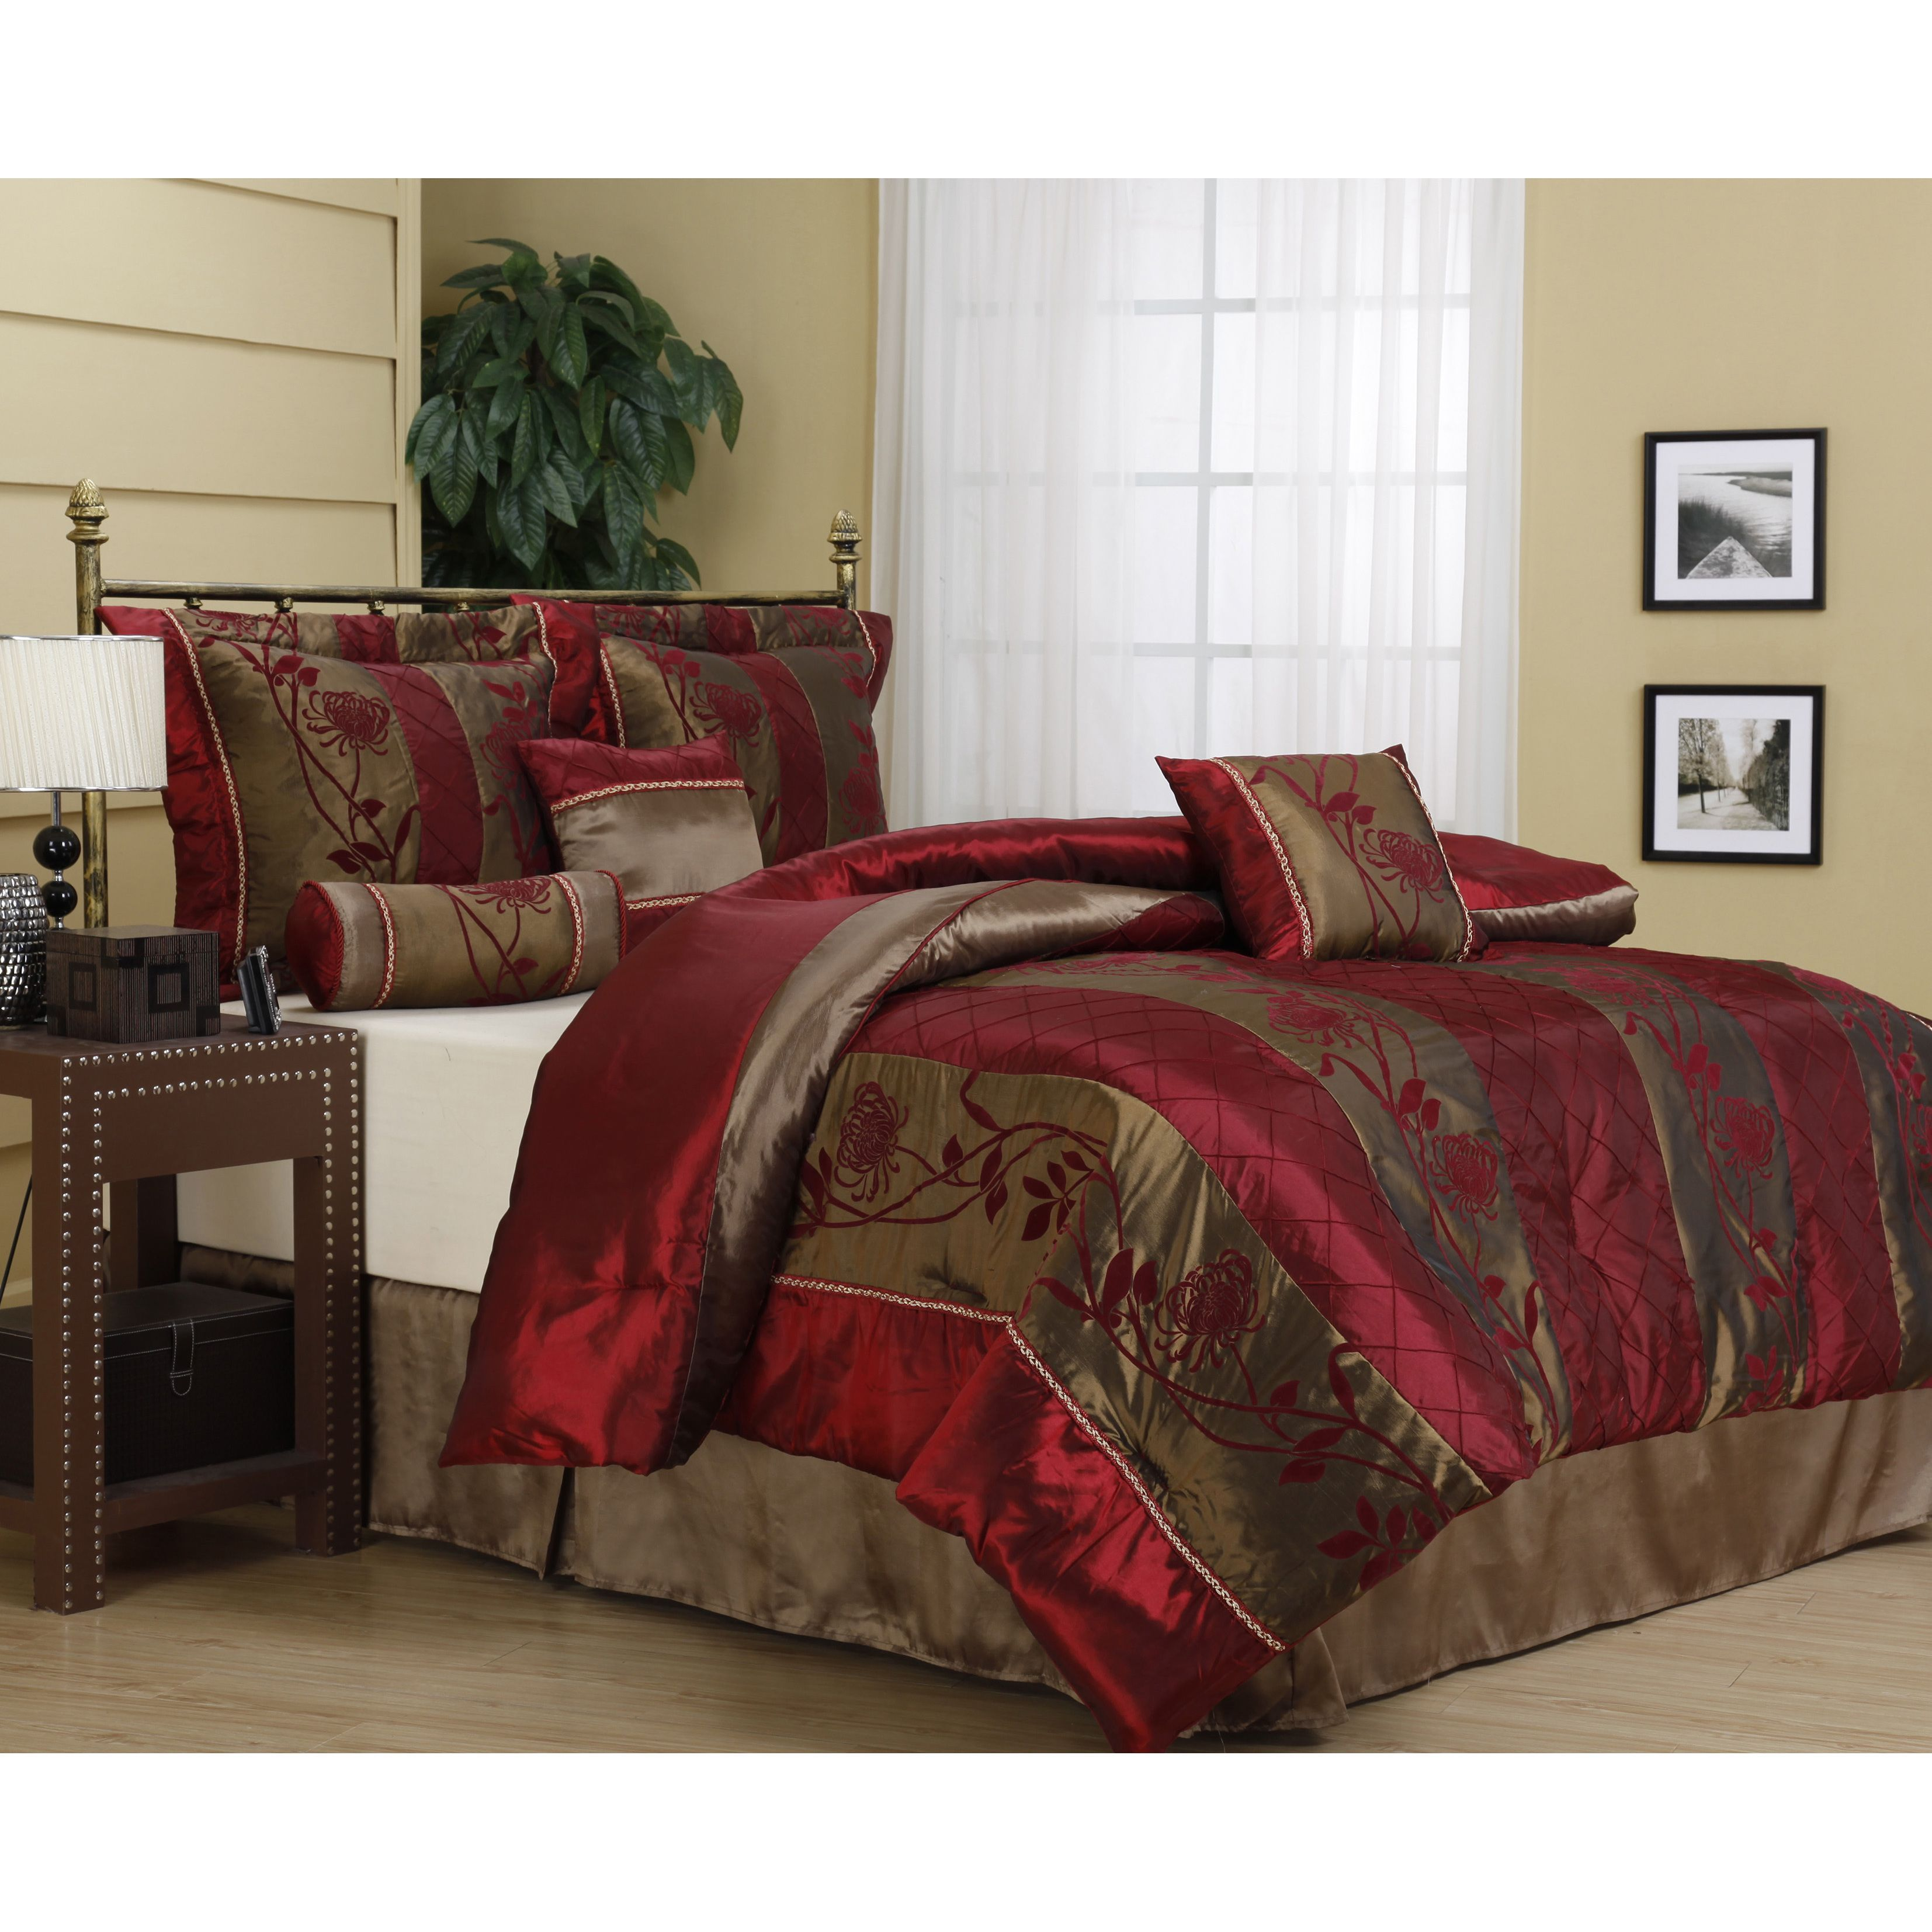 Bedding jardin collection bedding collections bed amp bath macy s - Nanshing Rosemonde 7 Piece Red Gold Comforter Set By Nanshing